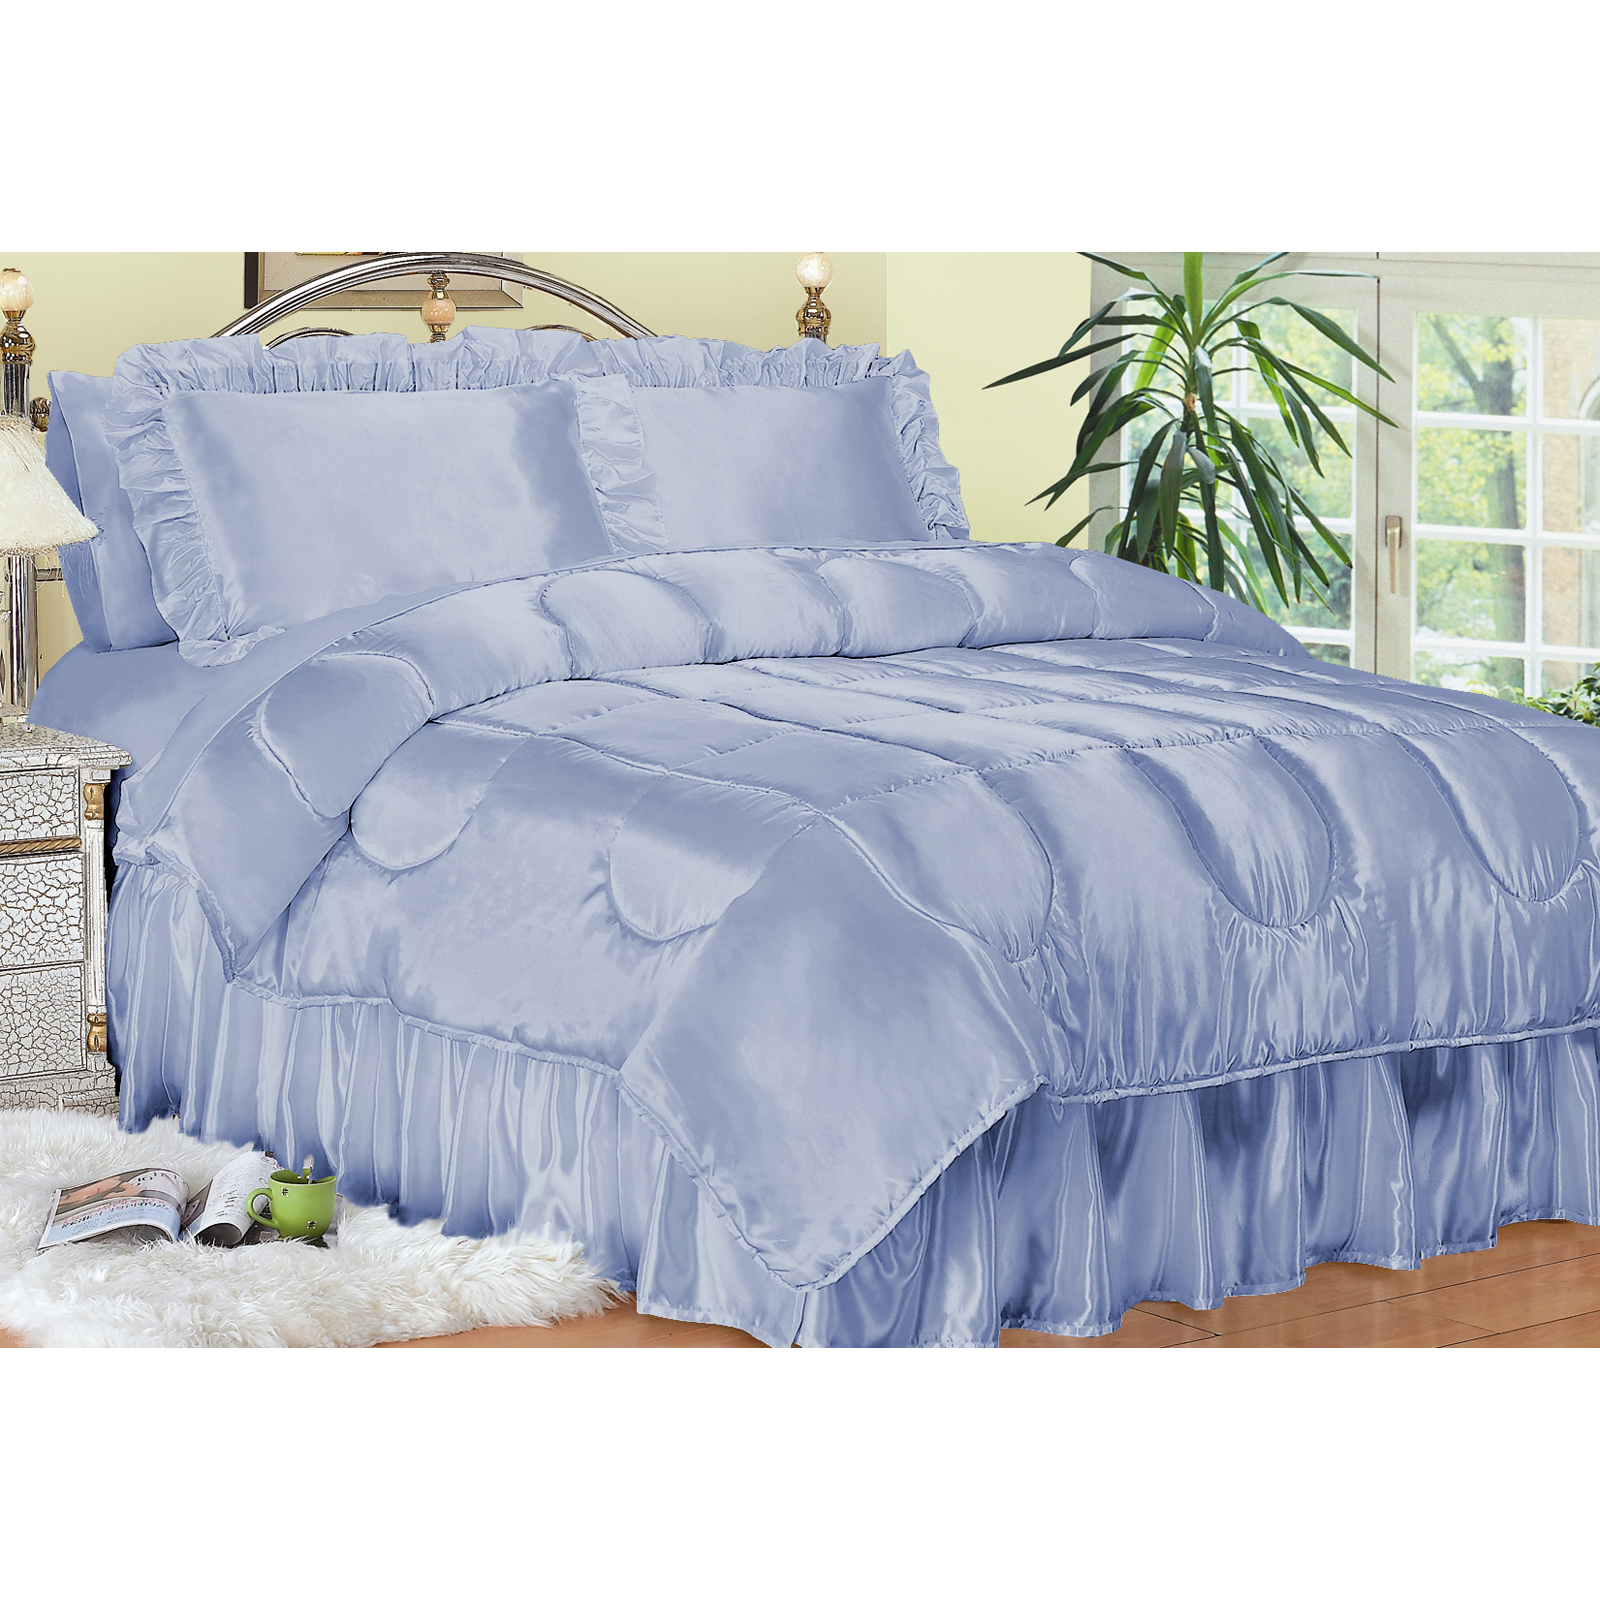 Scent-Sation Charmeuse Satin Comforter Set - Bedding and ...